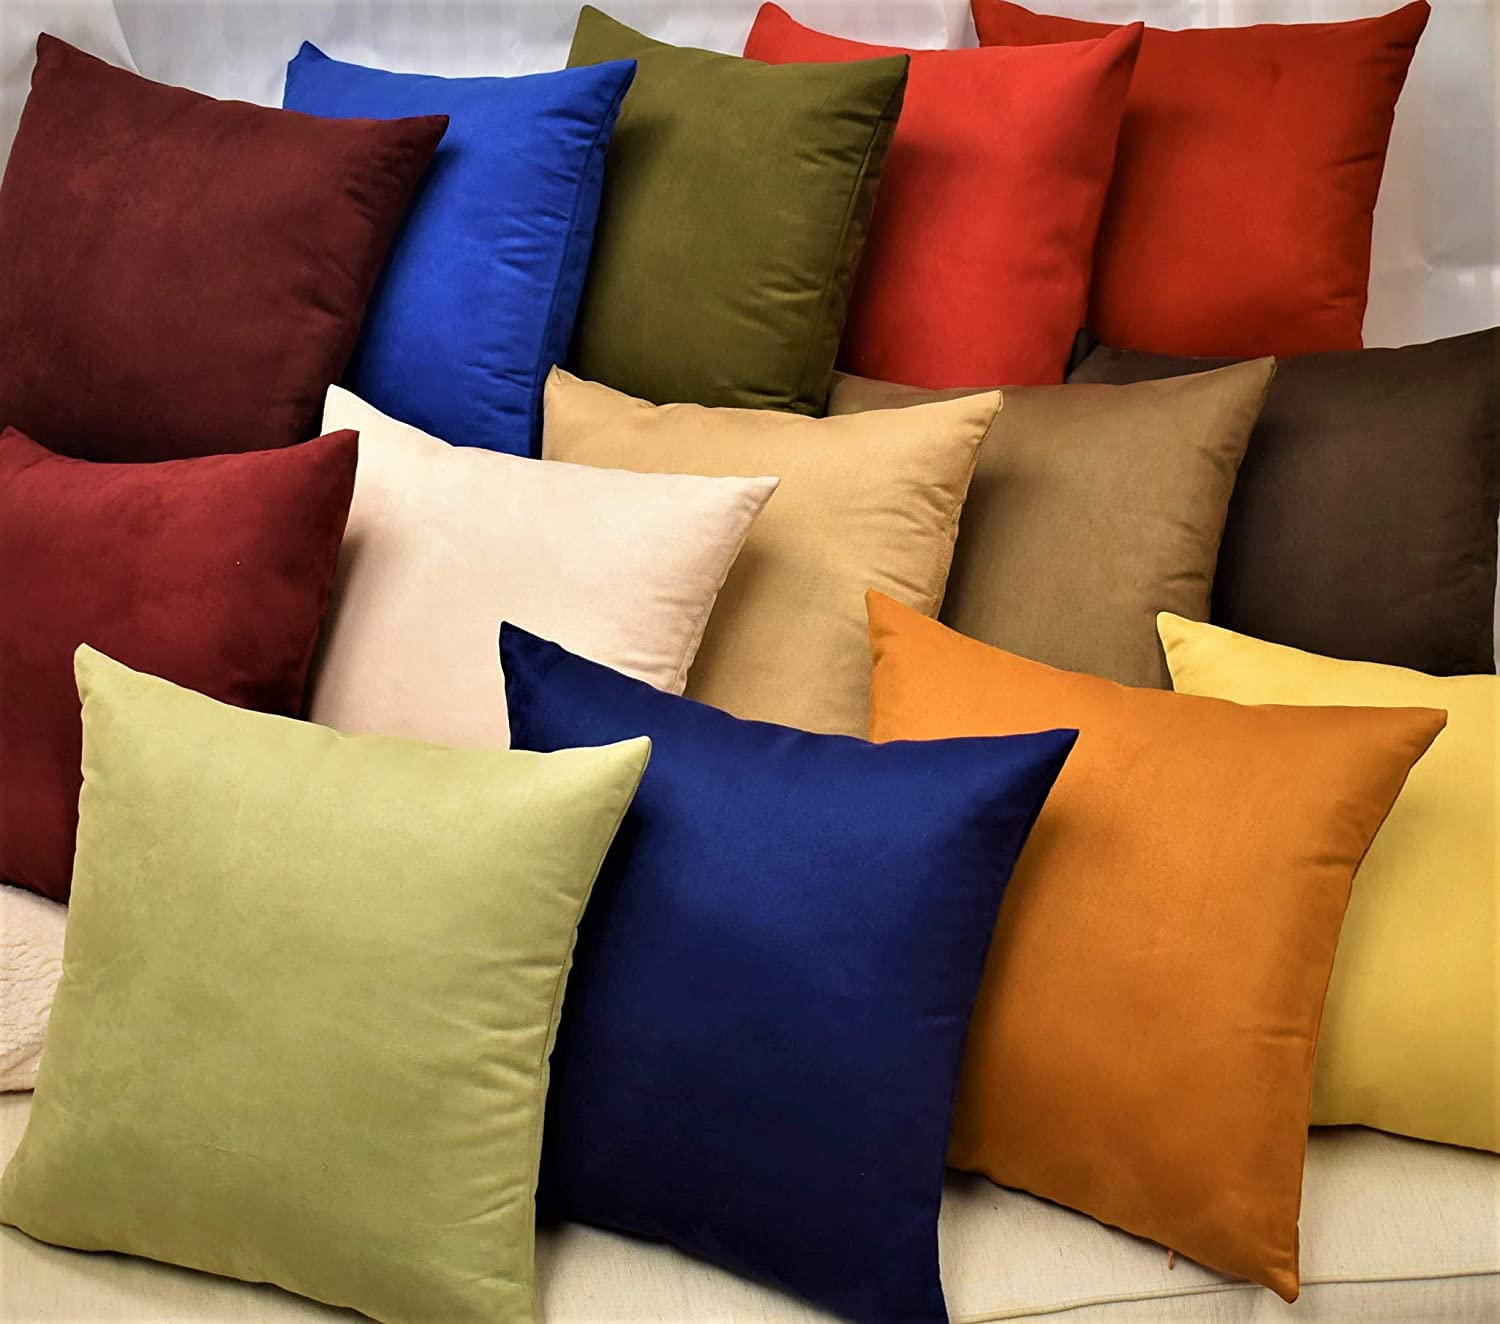 MoonRest Pack Mail order of 2- Suede Covers Square Pillow Long Beach Mall Throw Decorative